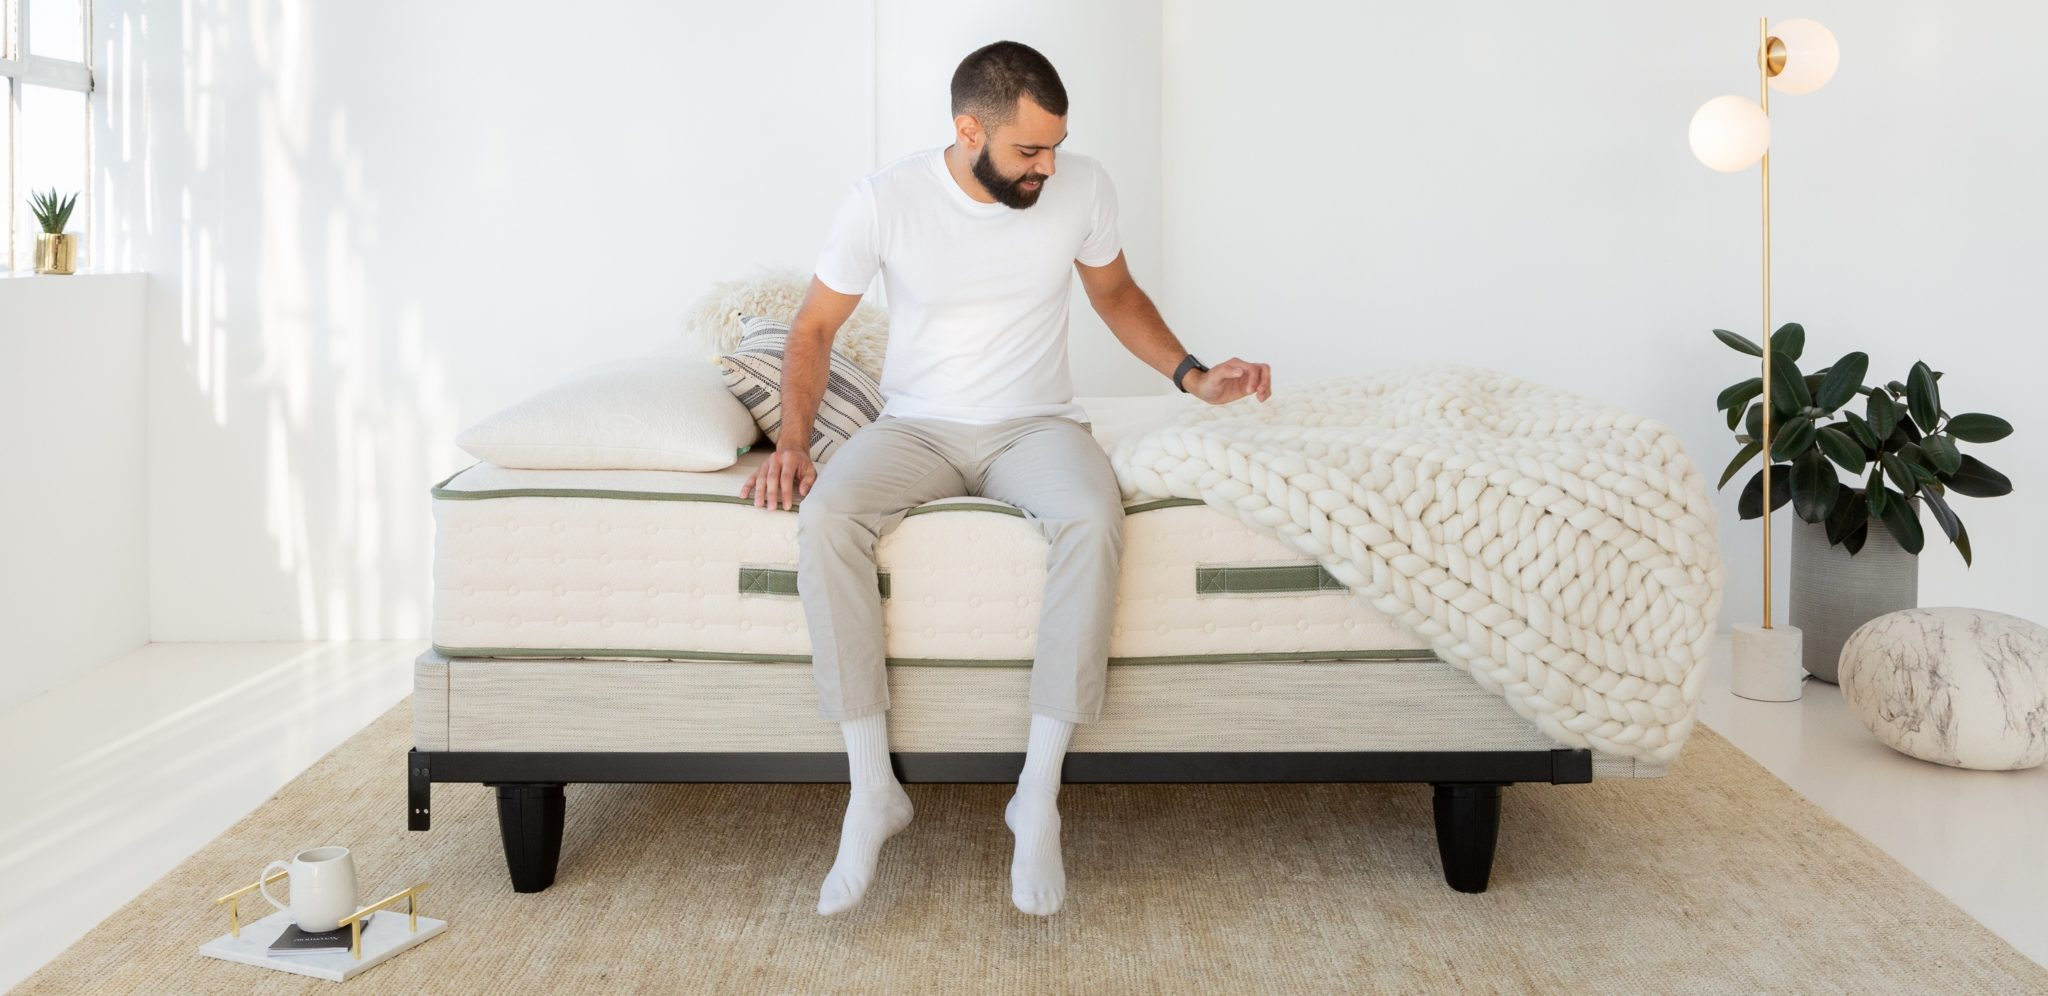 Best Mattress for Back Pain Man on Bed